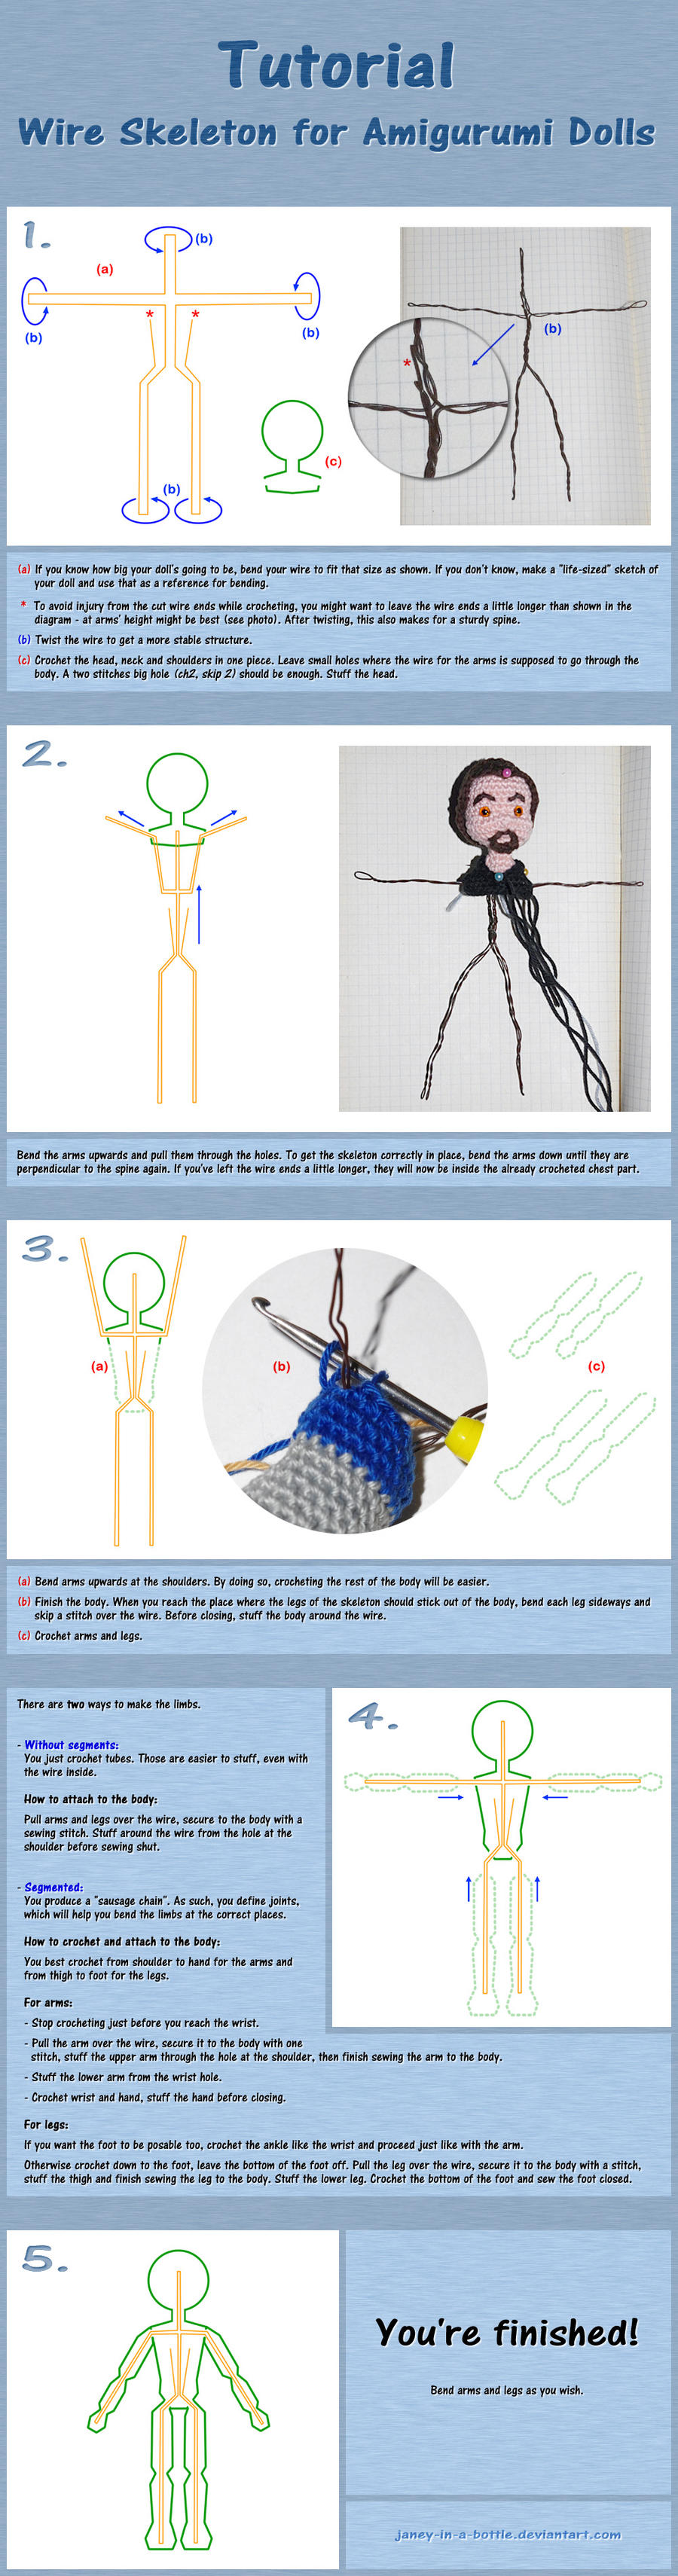 Tutorial: Wire Skeleton For Amigurumi Dolls by janey-in-a-bottle